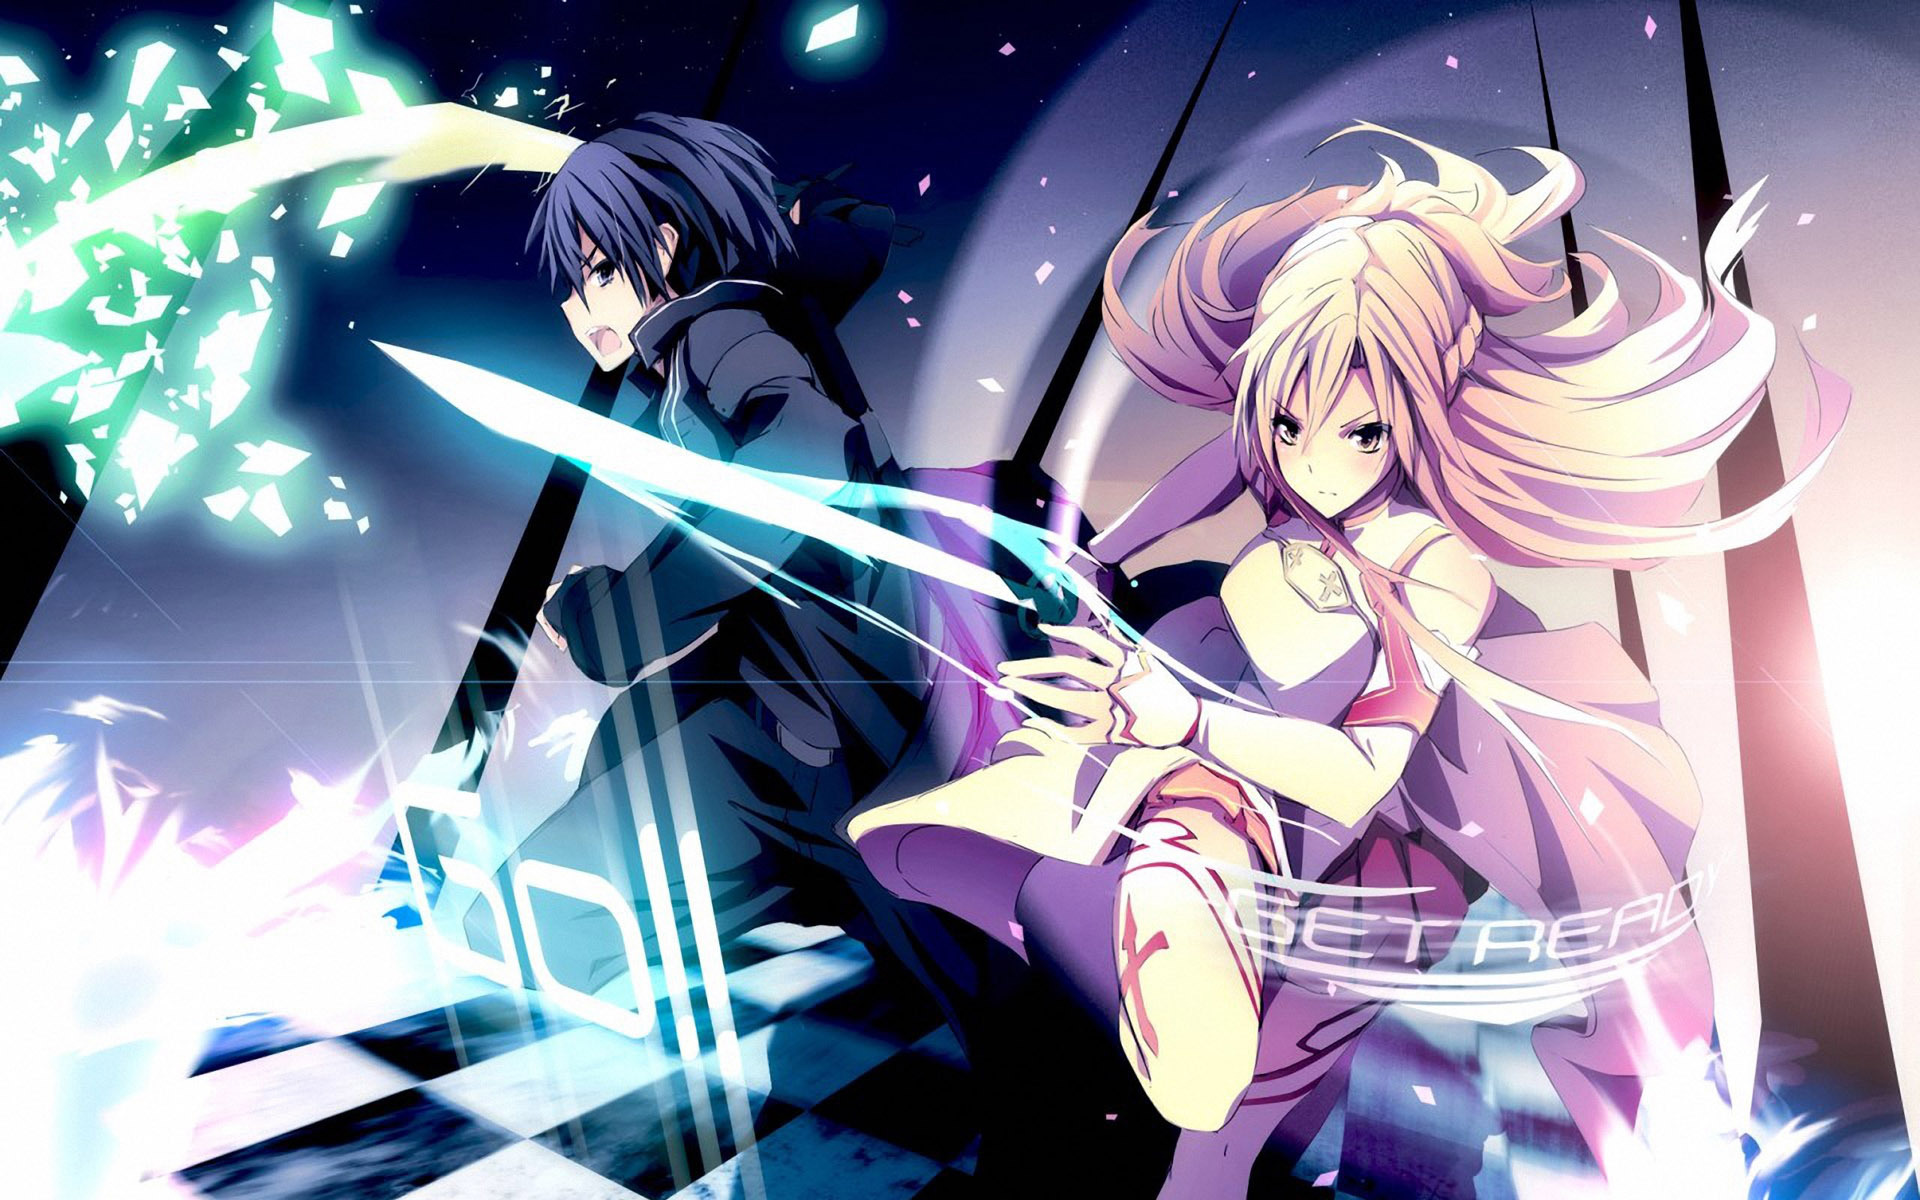 Simple Wallpaper High Quality Sao - 3395_sword_art_online  You Should Have_153958.jpg